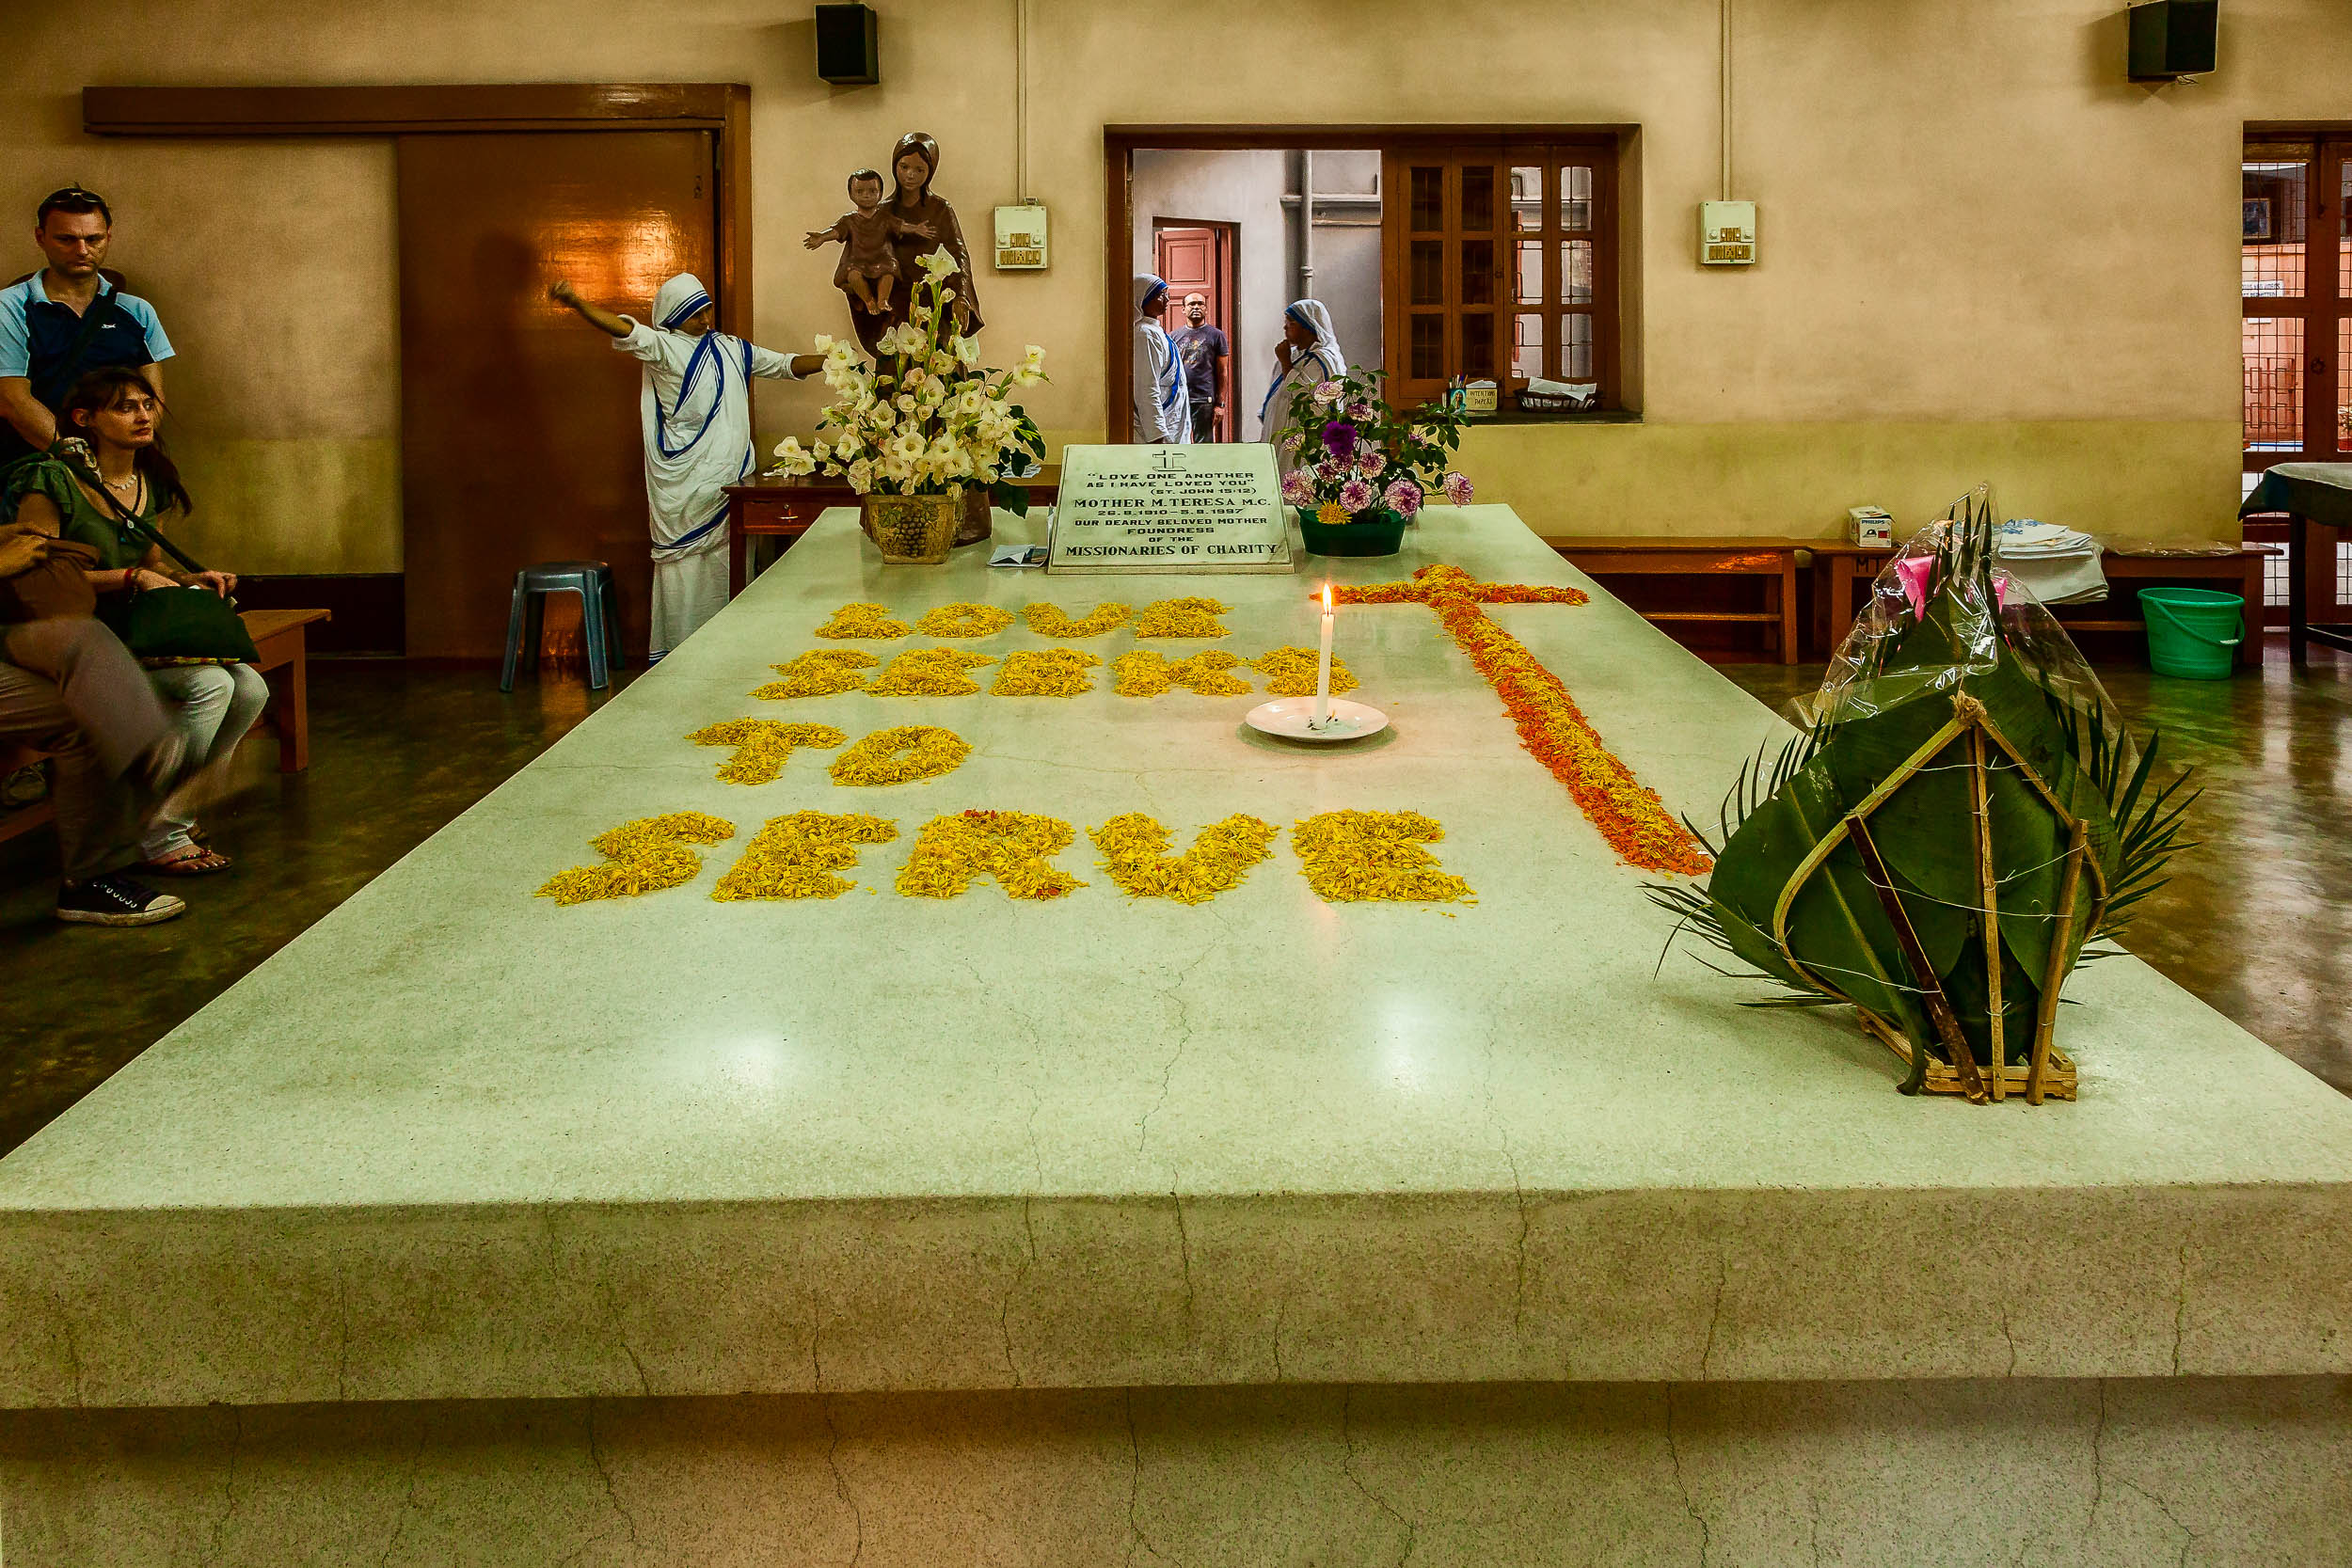 The tomb of Mother Teresa in Kolkata, India .